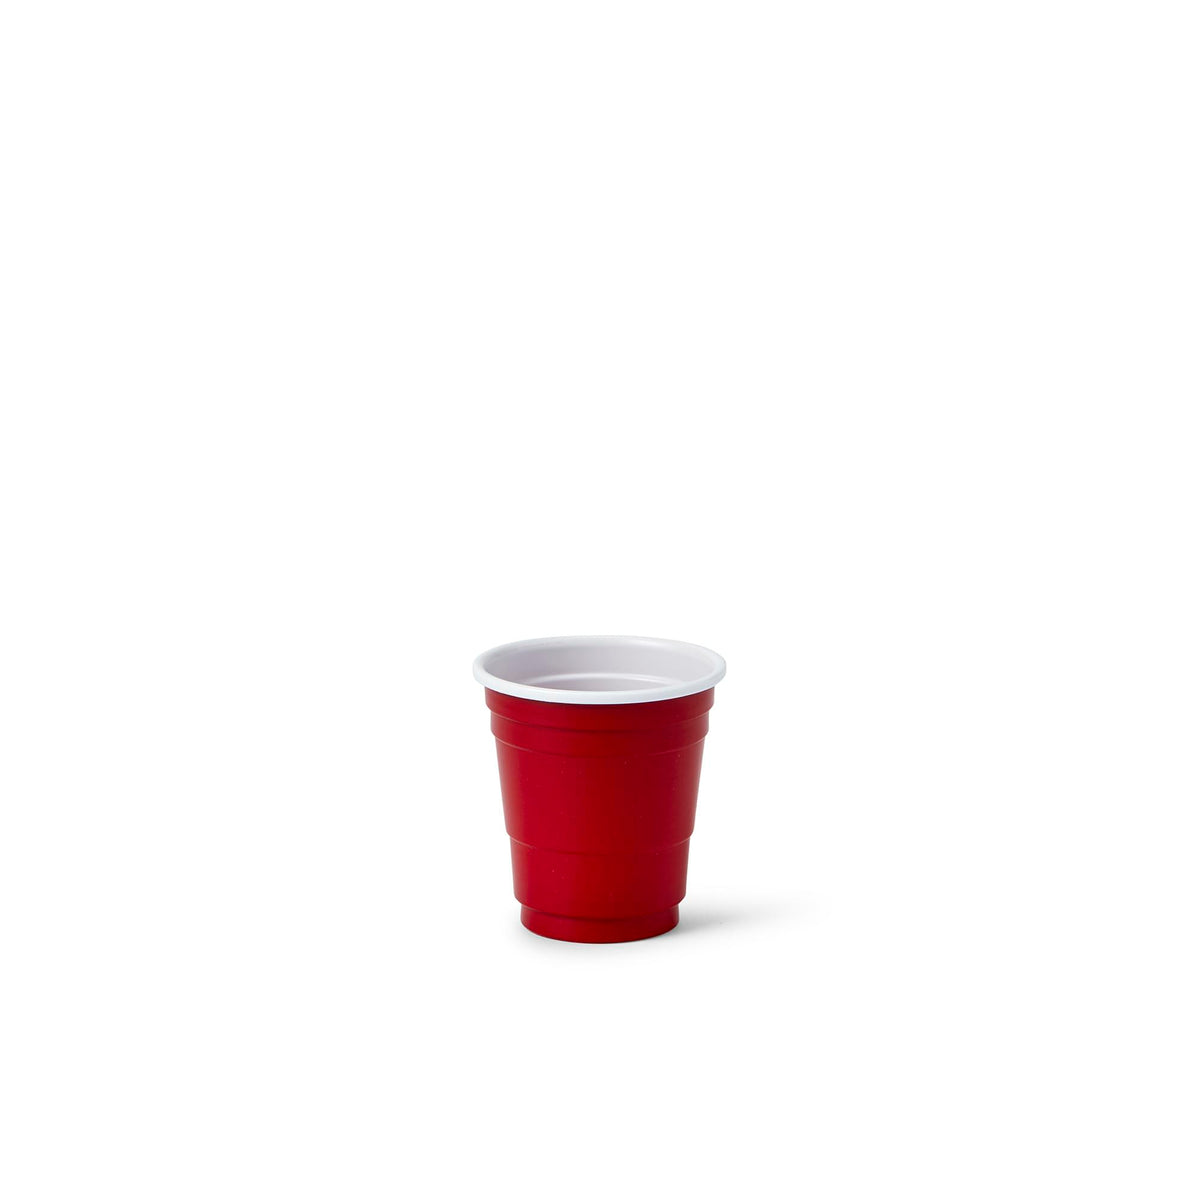 20 Pack Shot Glasses - 1.5 oz Acrylic Party Cup - Red Plastic Shot Glass